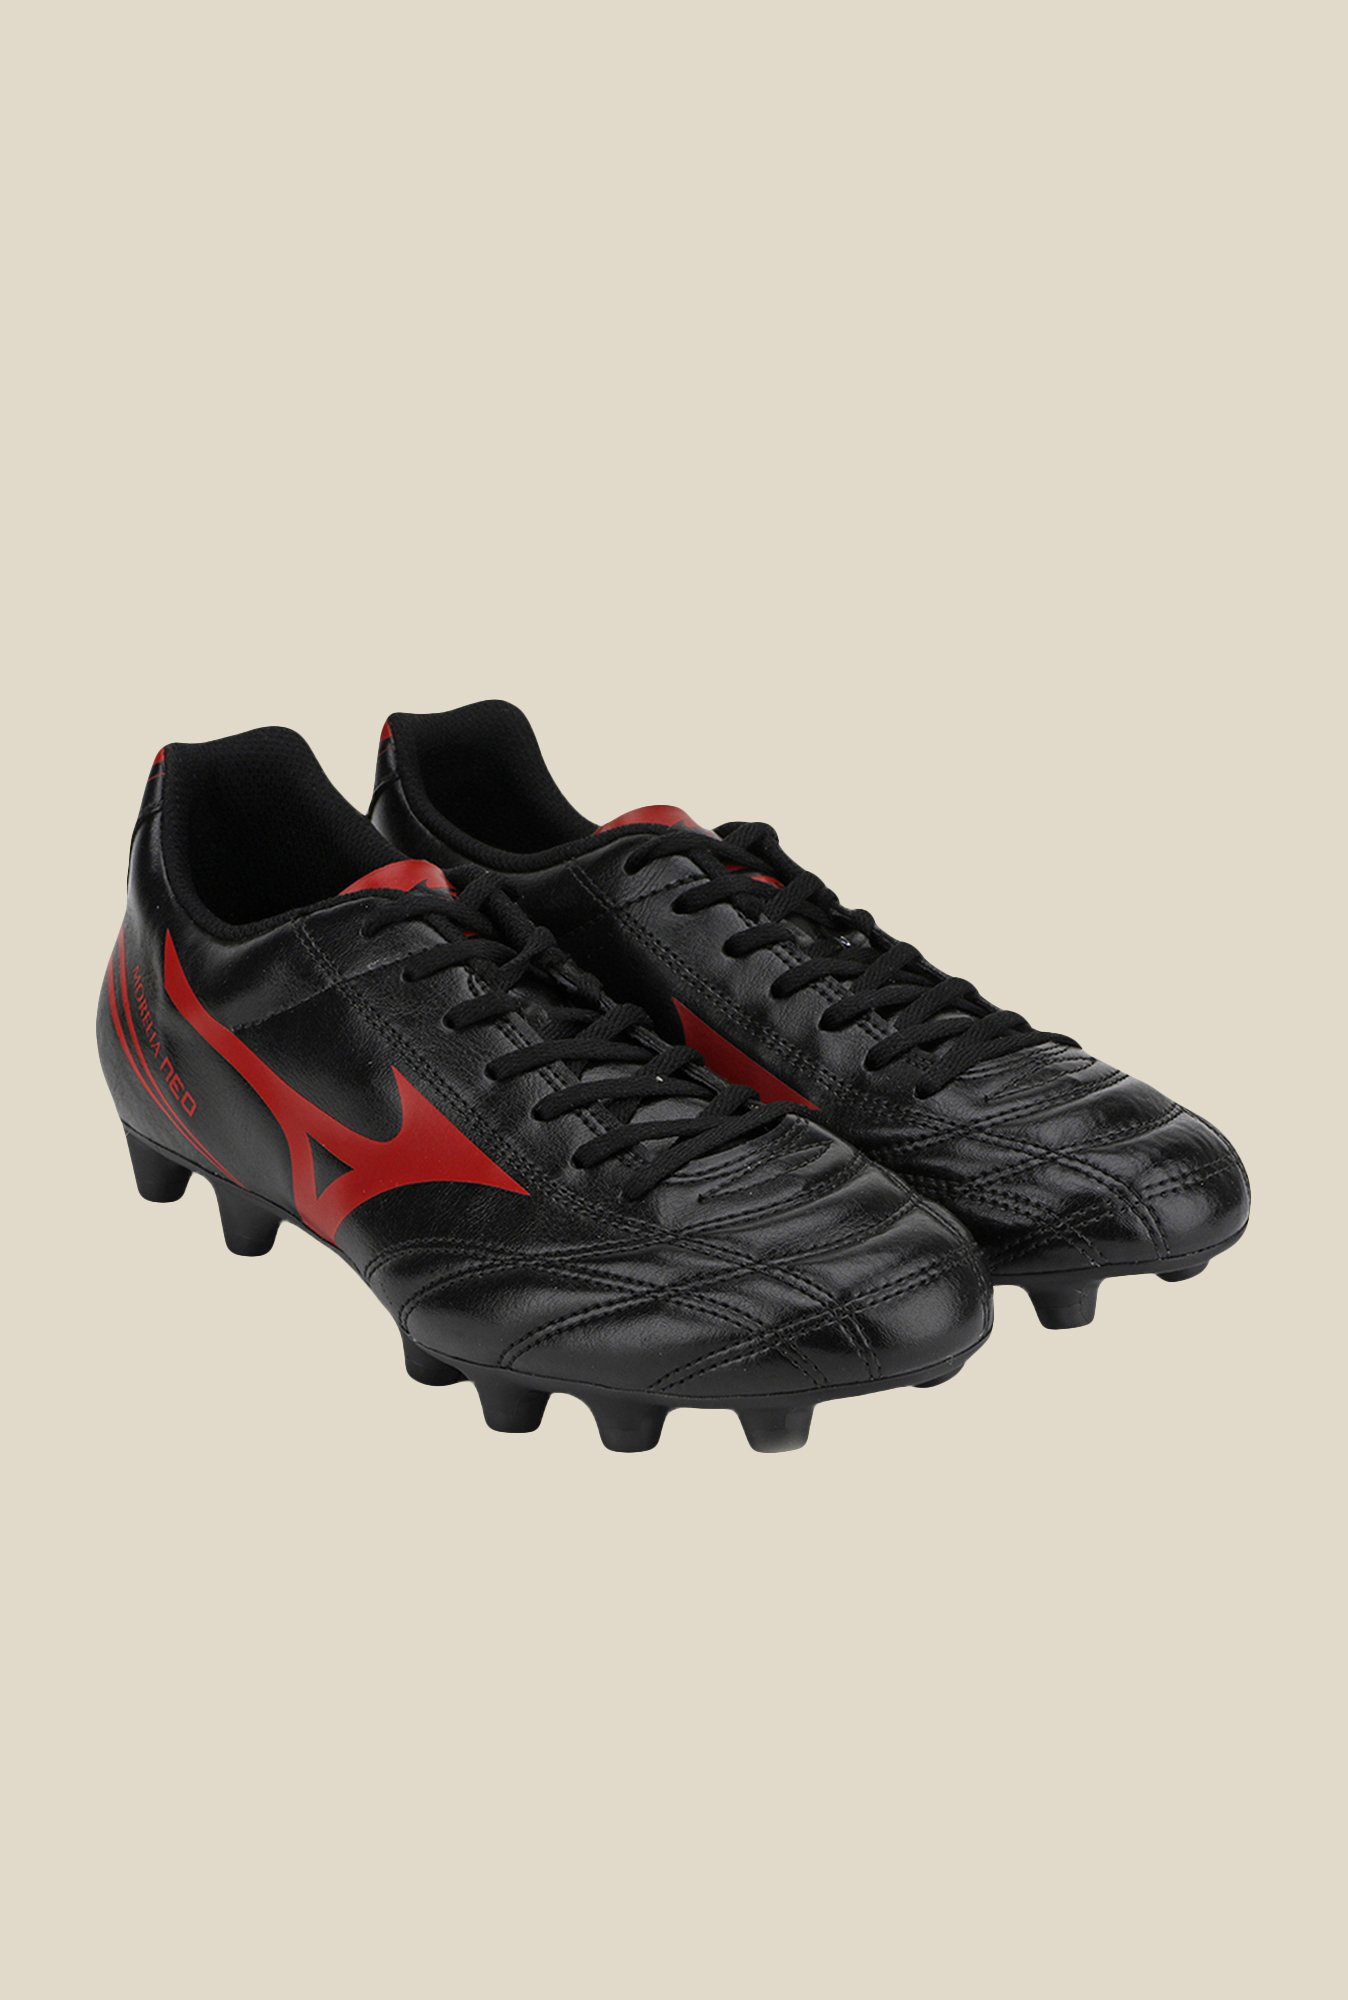 Mizuno Morelia Neo CL MD Black & Red Football Shoes